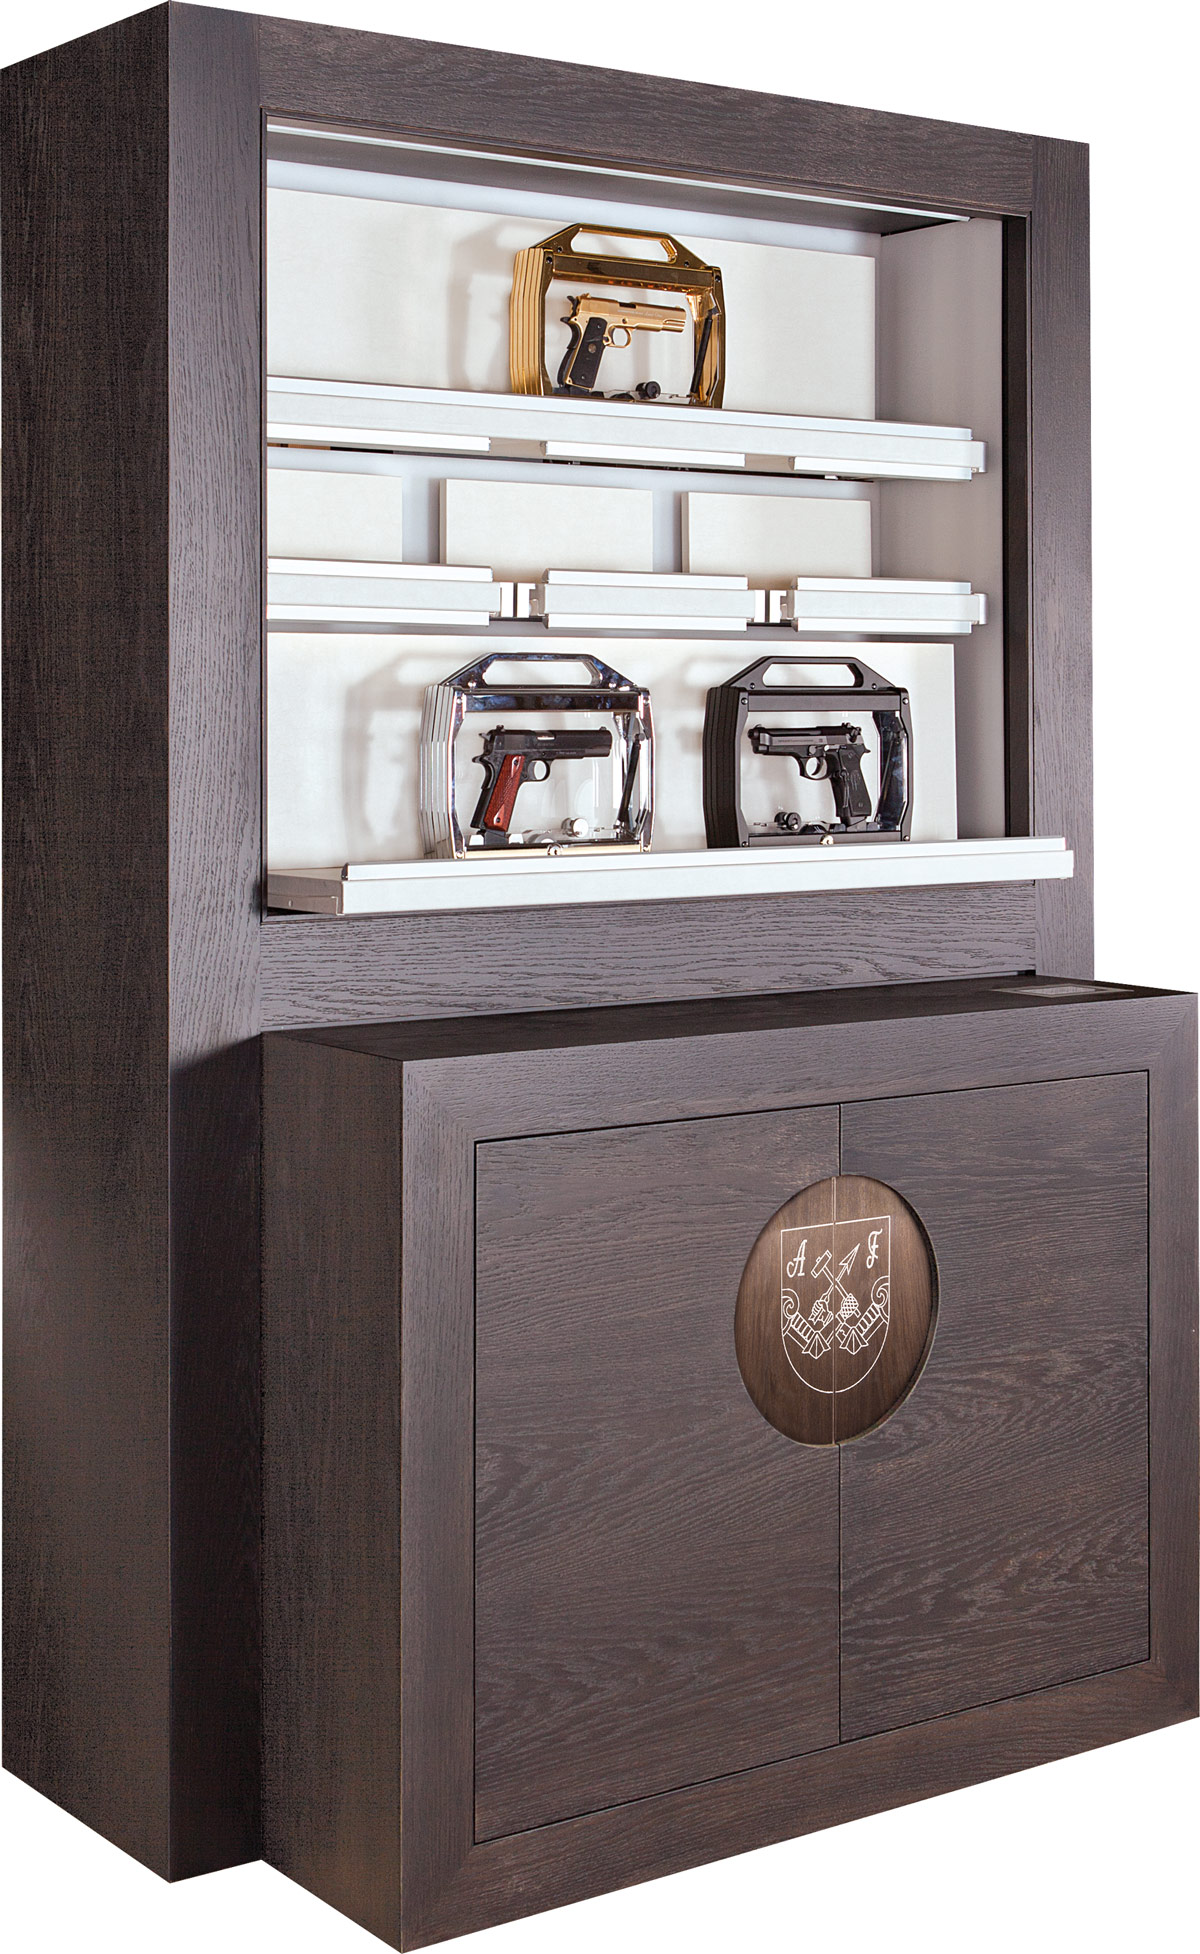 domotic-display-cabinet